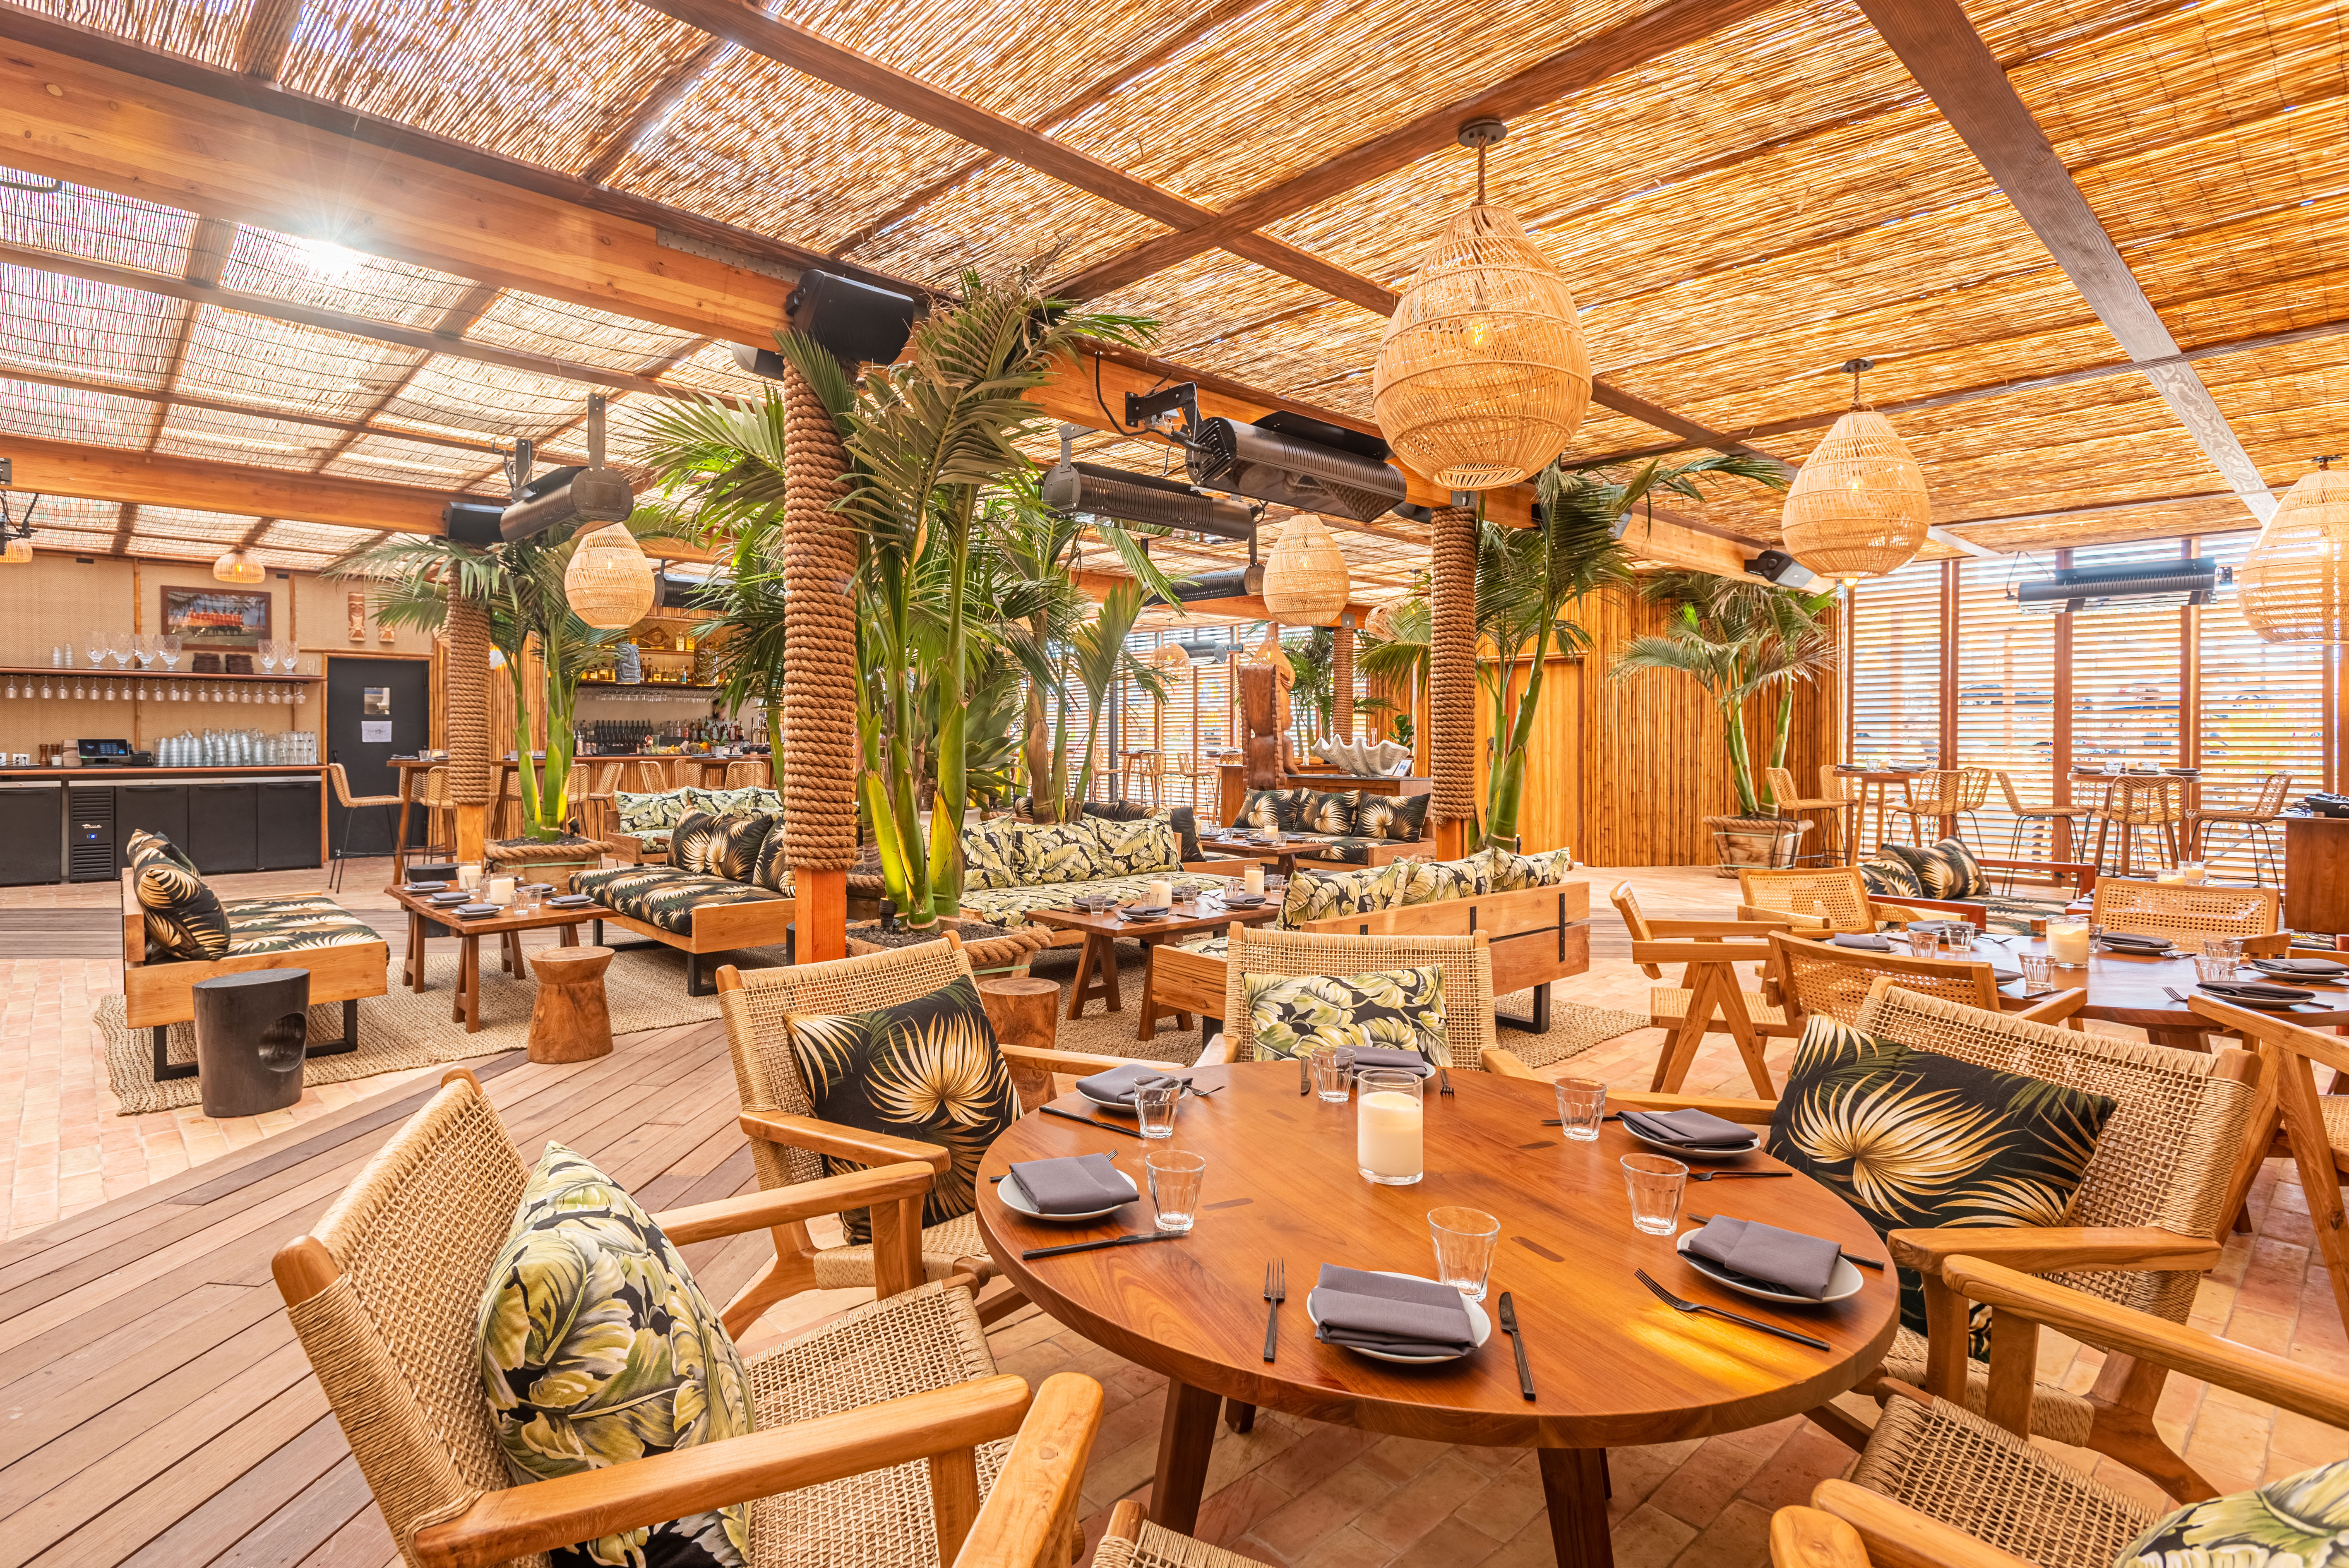 Sunny dining room with Tiki decor, low-level tables and chair, with plants.